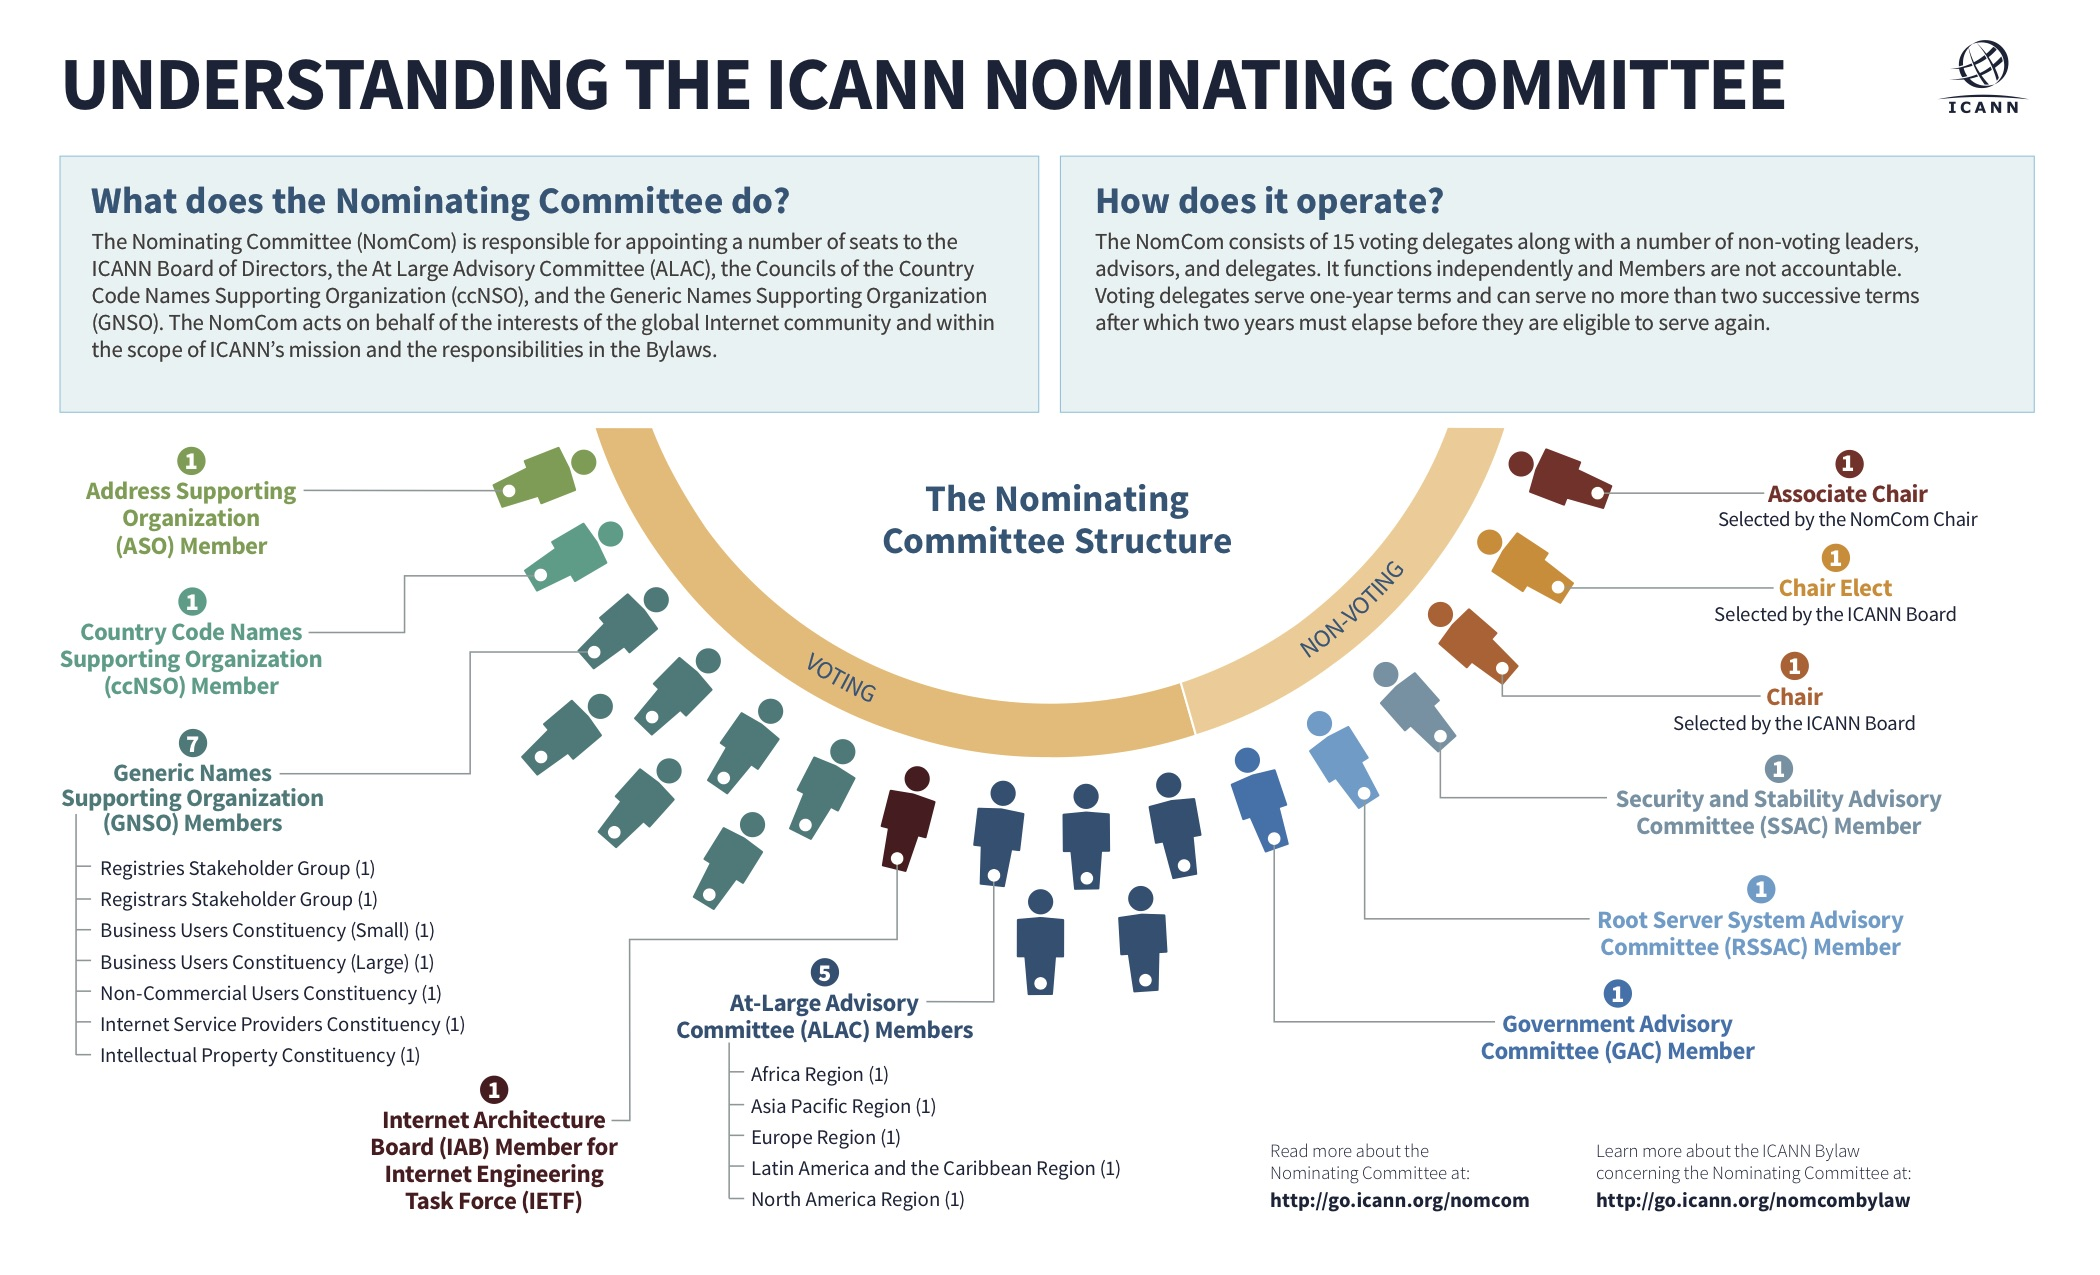 The Nominating Committee (NomCom) Structure